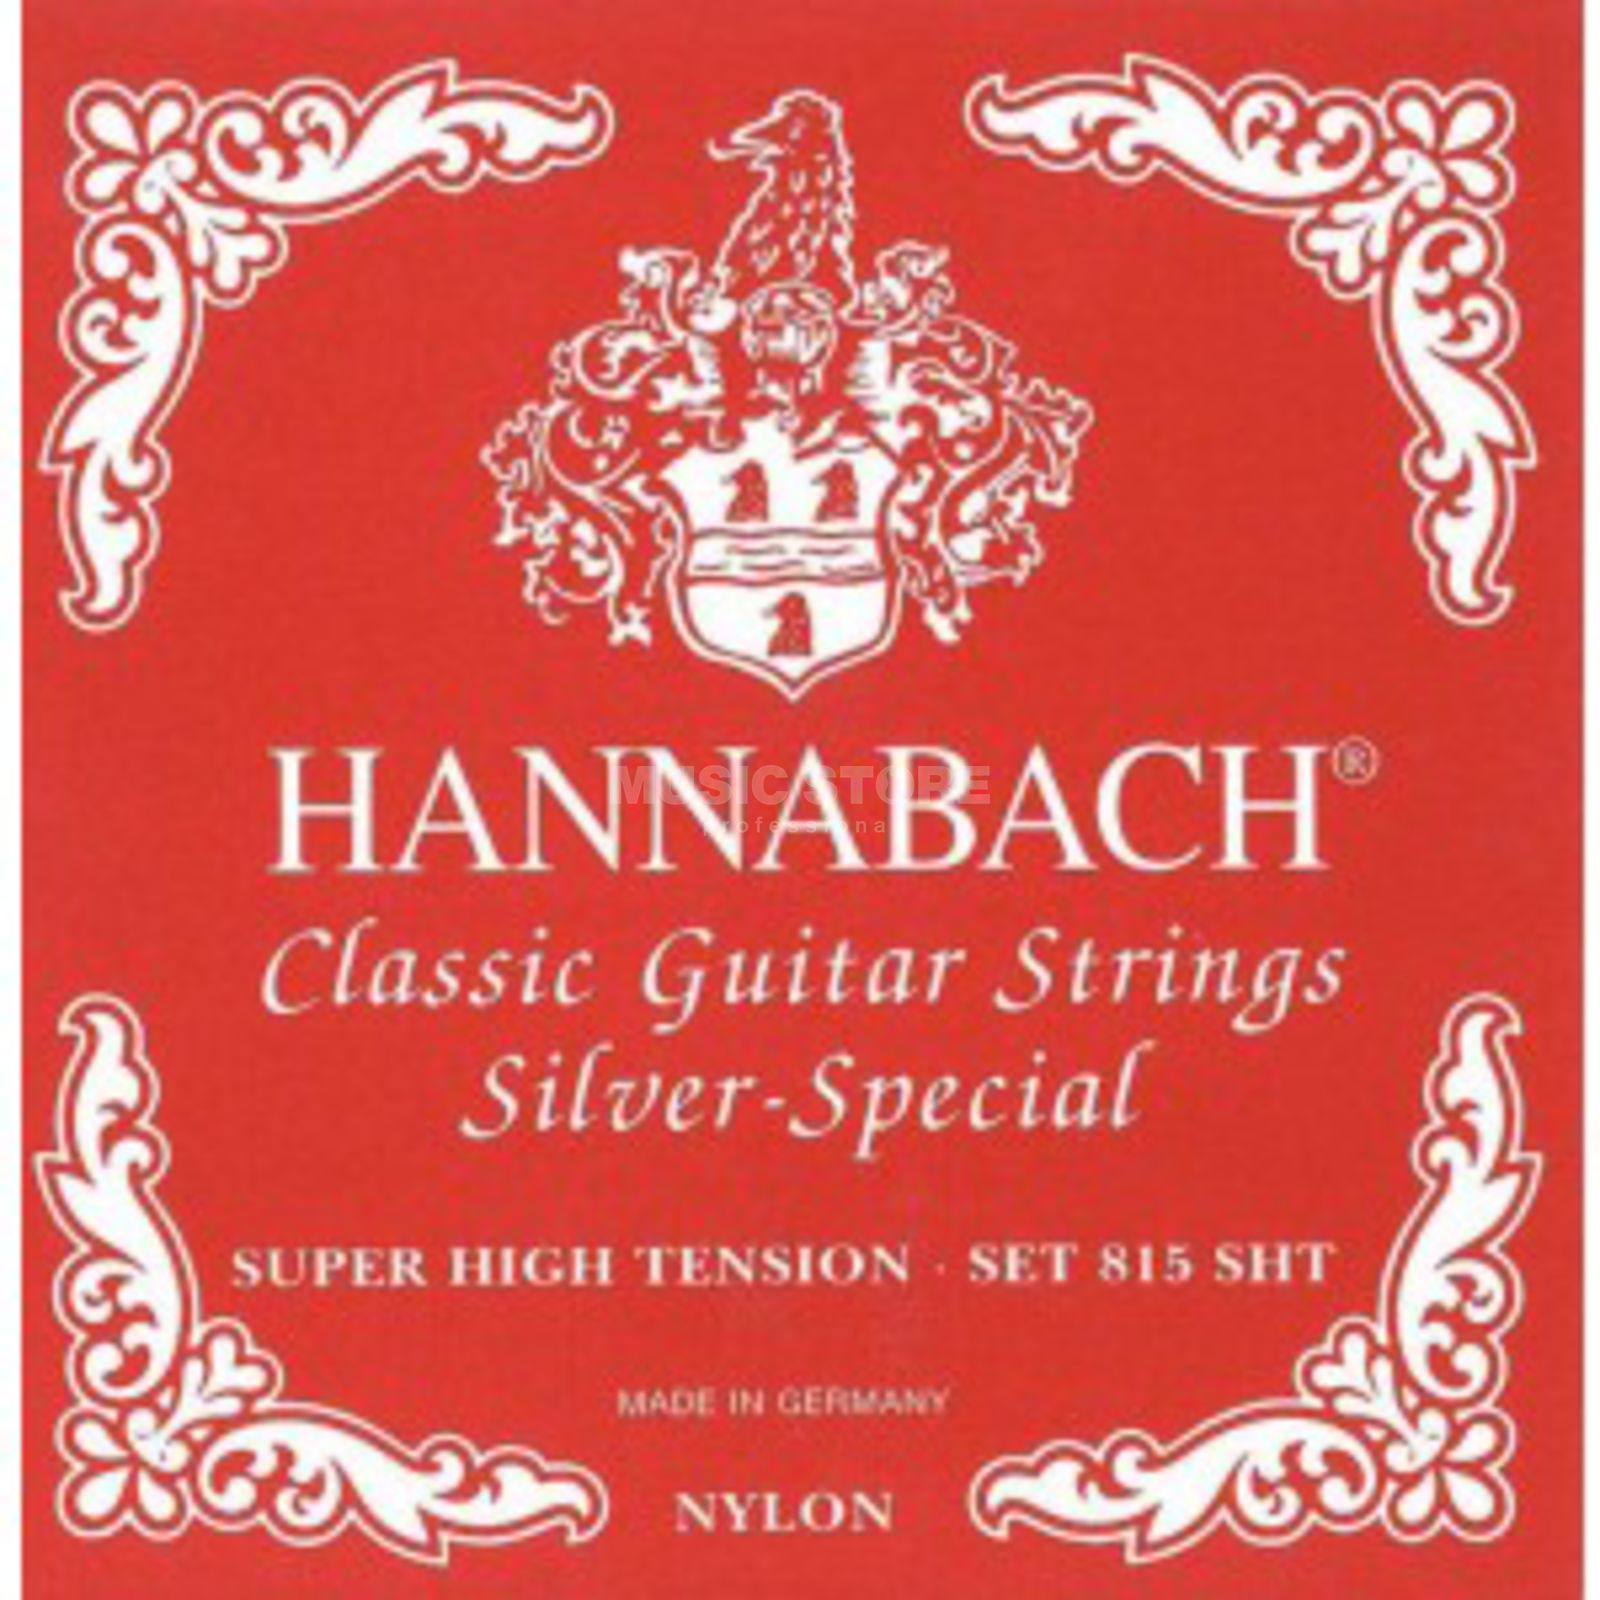 Hannabach K-Git.Saiten Satz 815 rot Nylon Super High Tension Produktbild